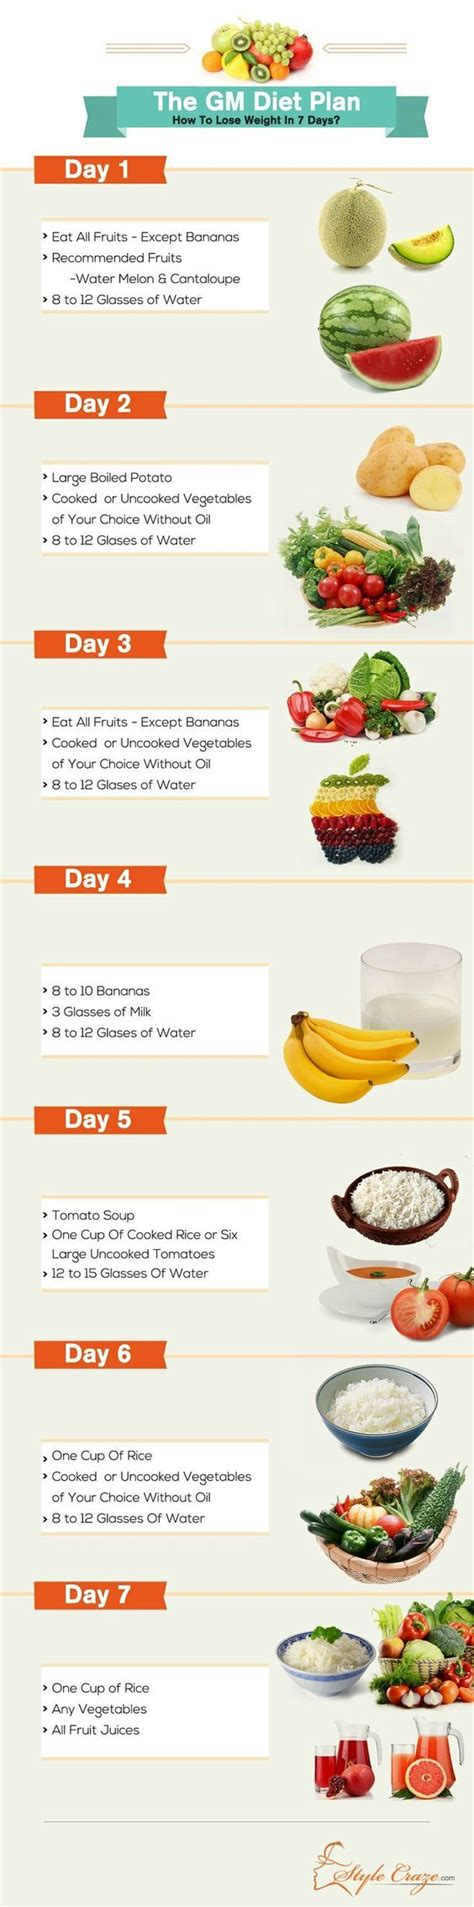 Detox Diet For Weight Loss India by The Gm Diet Plan How To Lose Weight In Just 7 Days